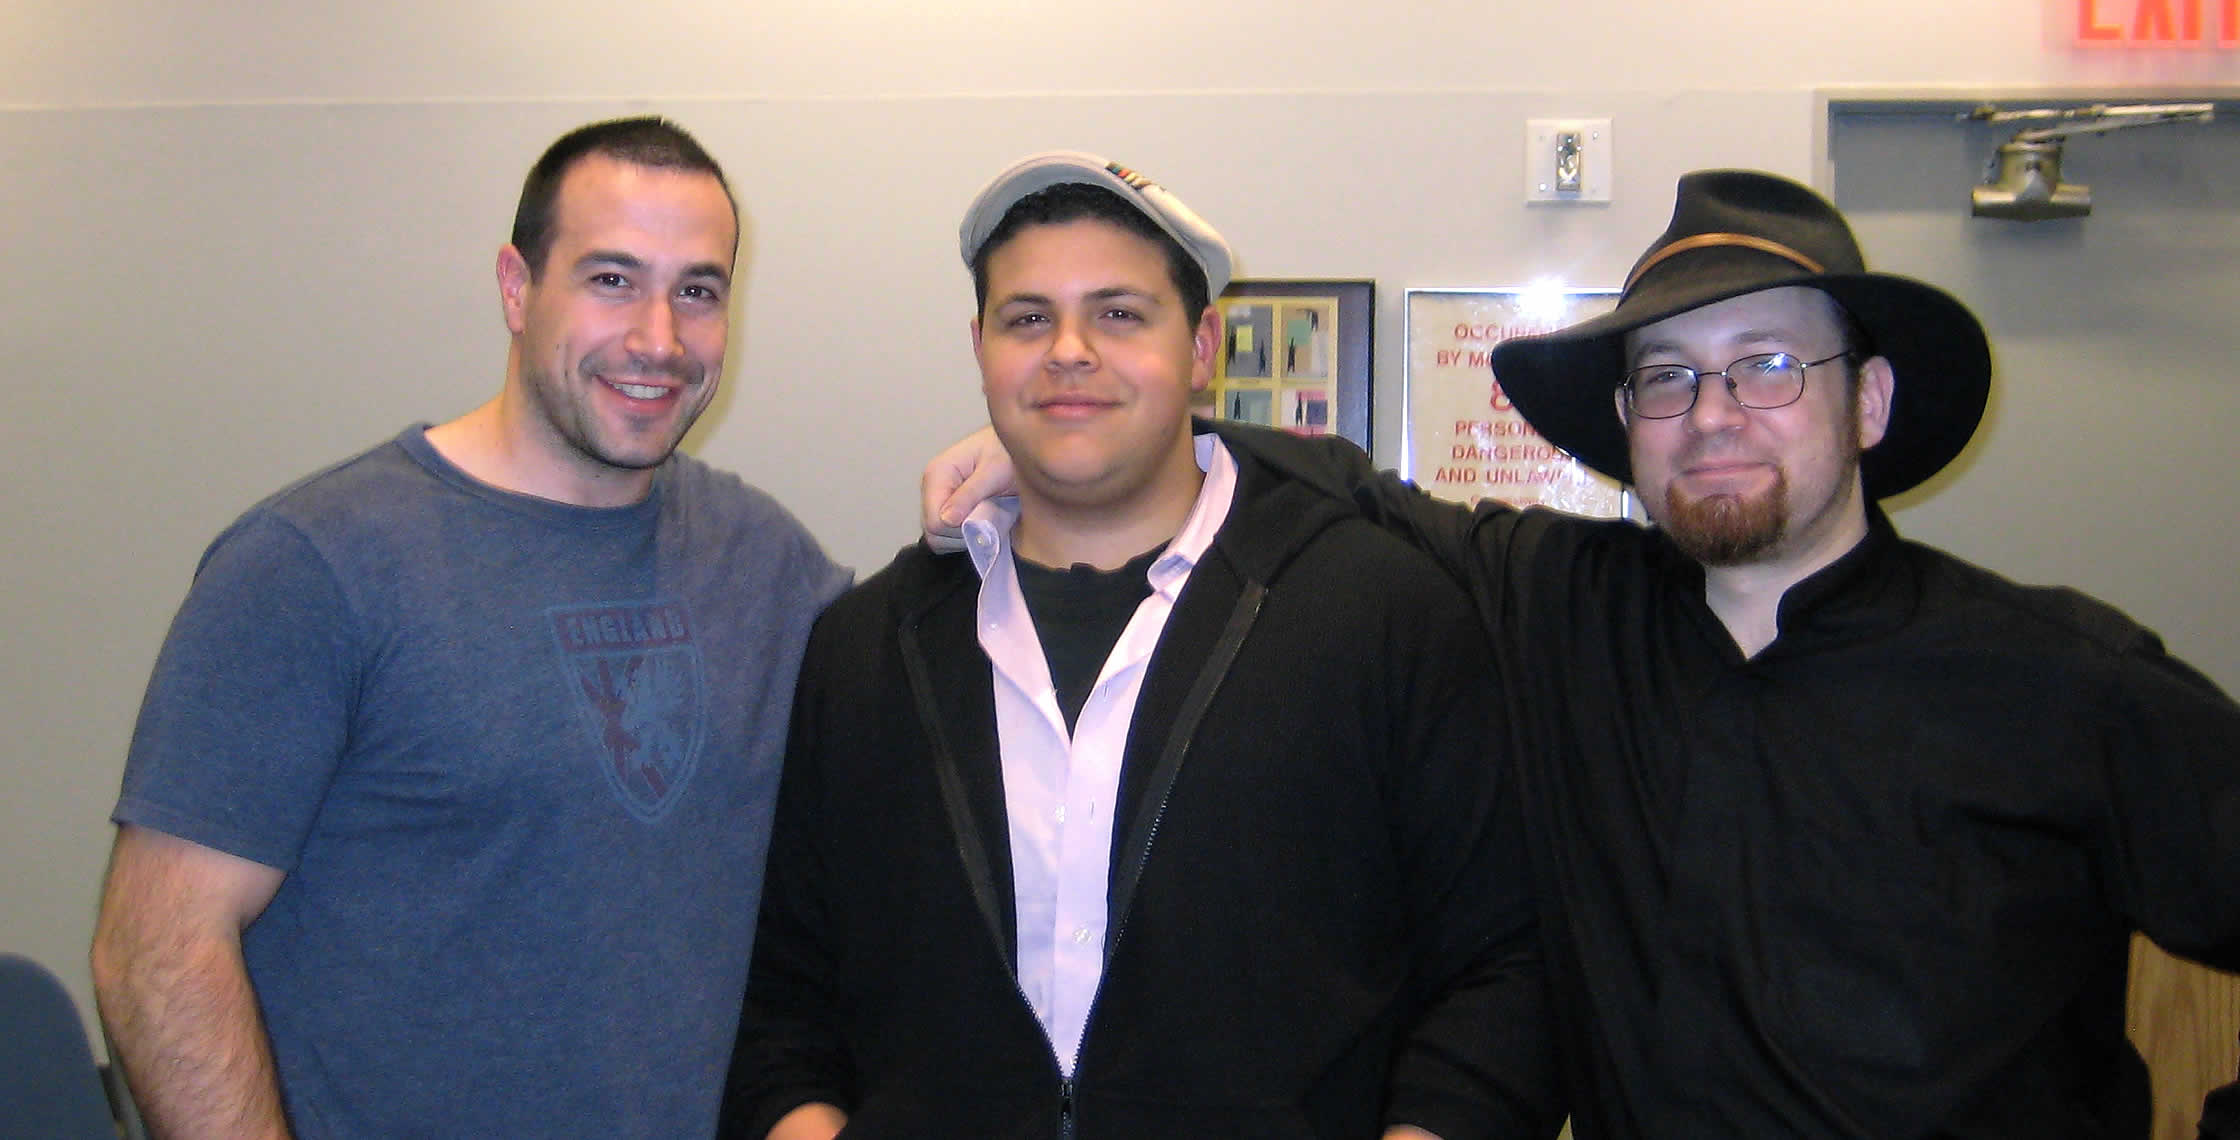 Ben Nadel at the New York ColdFusion User Group (Dec. 2008) with: Clark Valberg and Michael Dinowitz